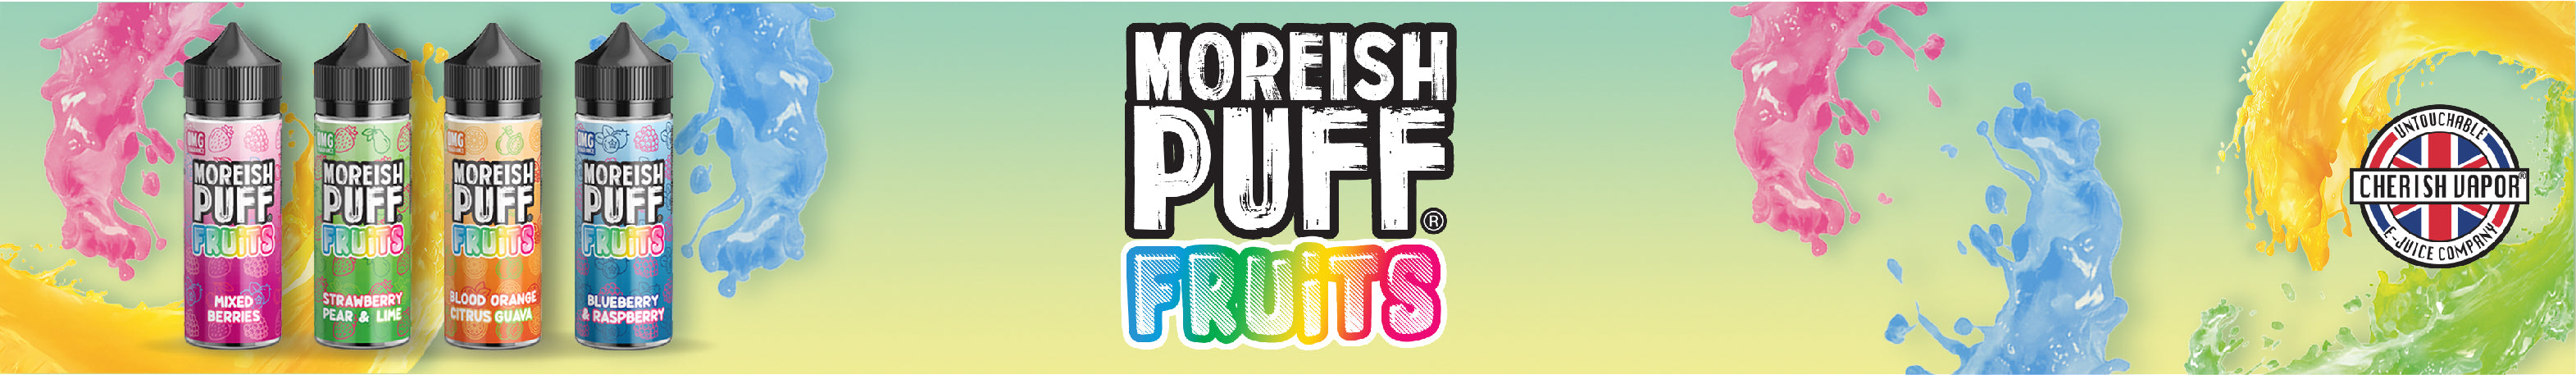 Moreish Puff Fruits E-liquid UK